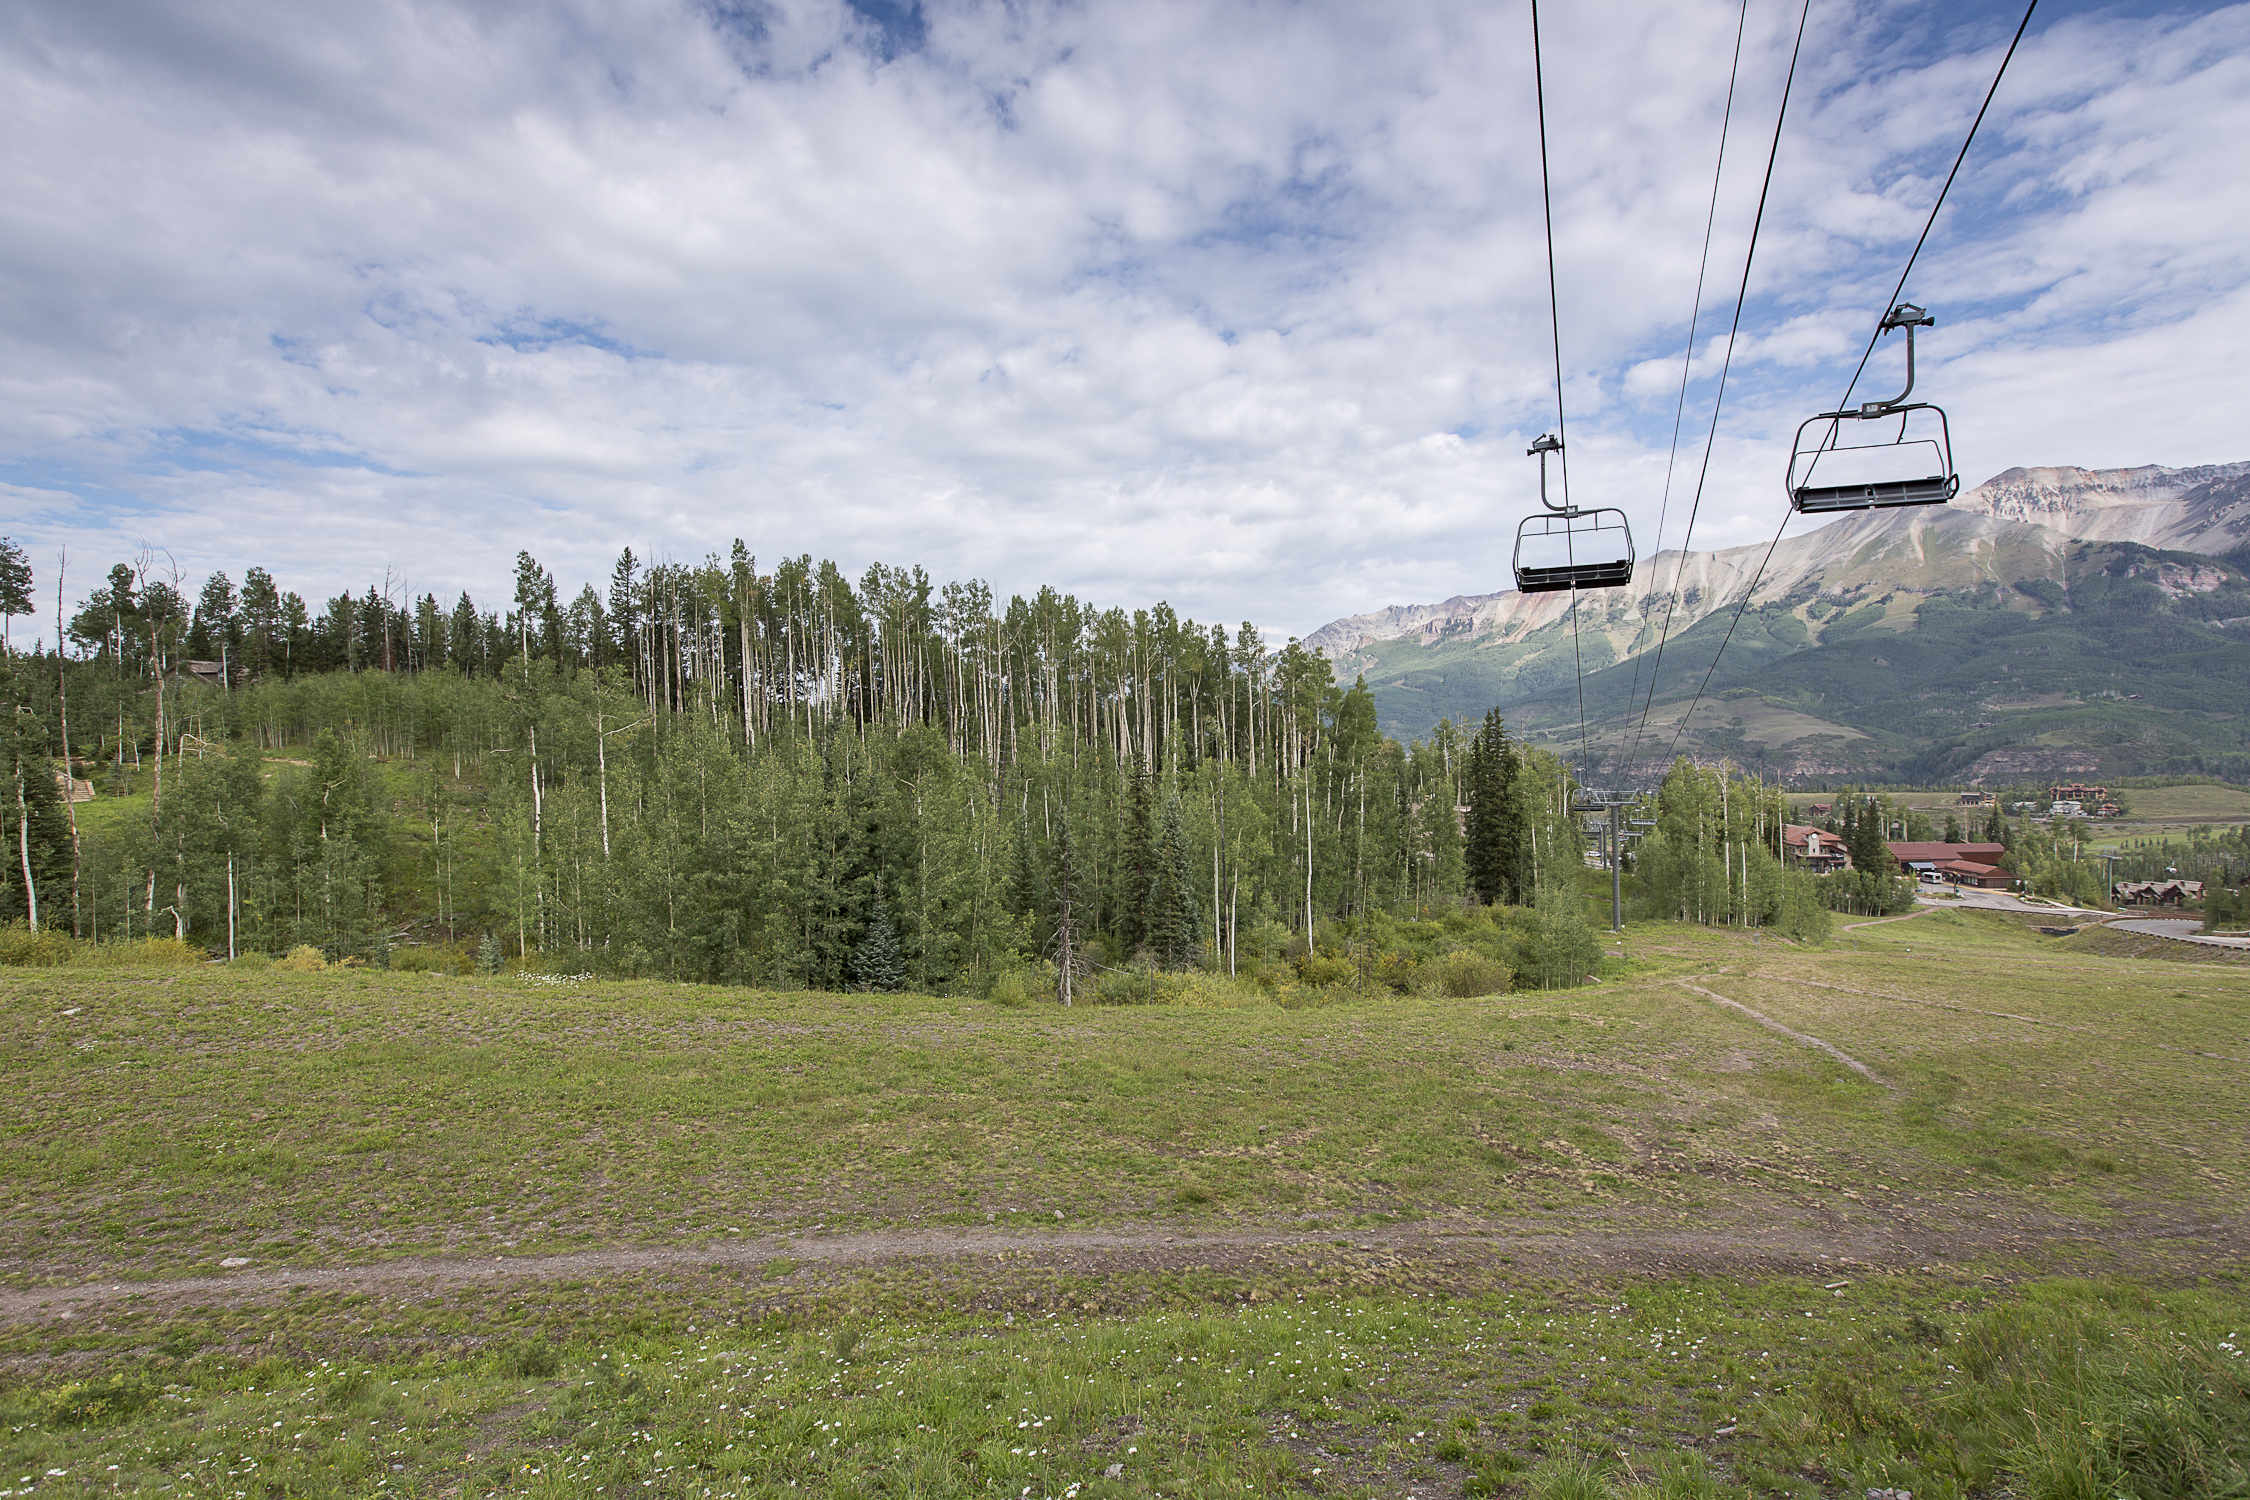 Terreno por un Venta en Lot 240, Direct Ski-inSki-out --- Hang Glider Drive Mountain Village Mountain Village, Telluride, Colorado, 81435 Estados Unidos